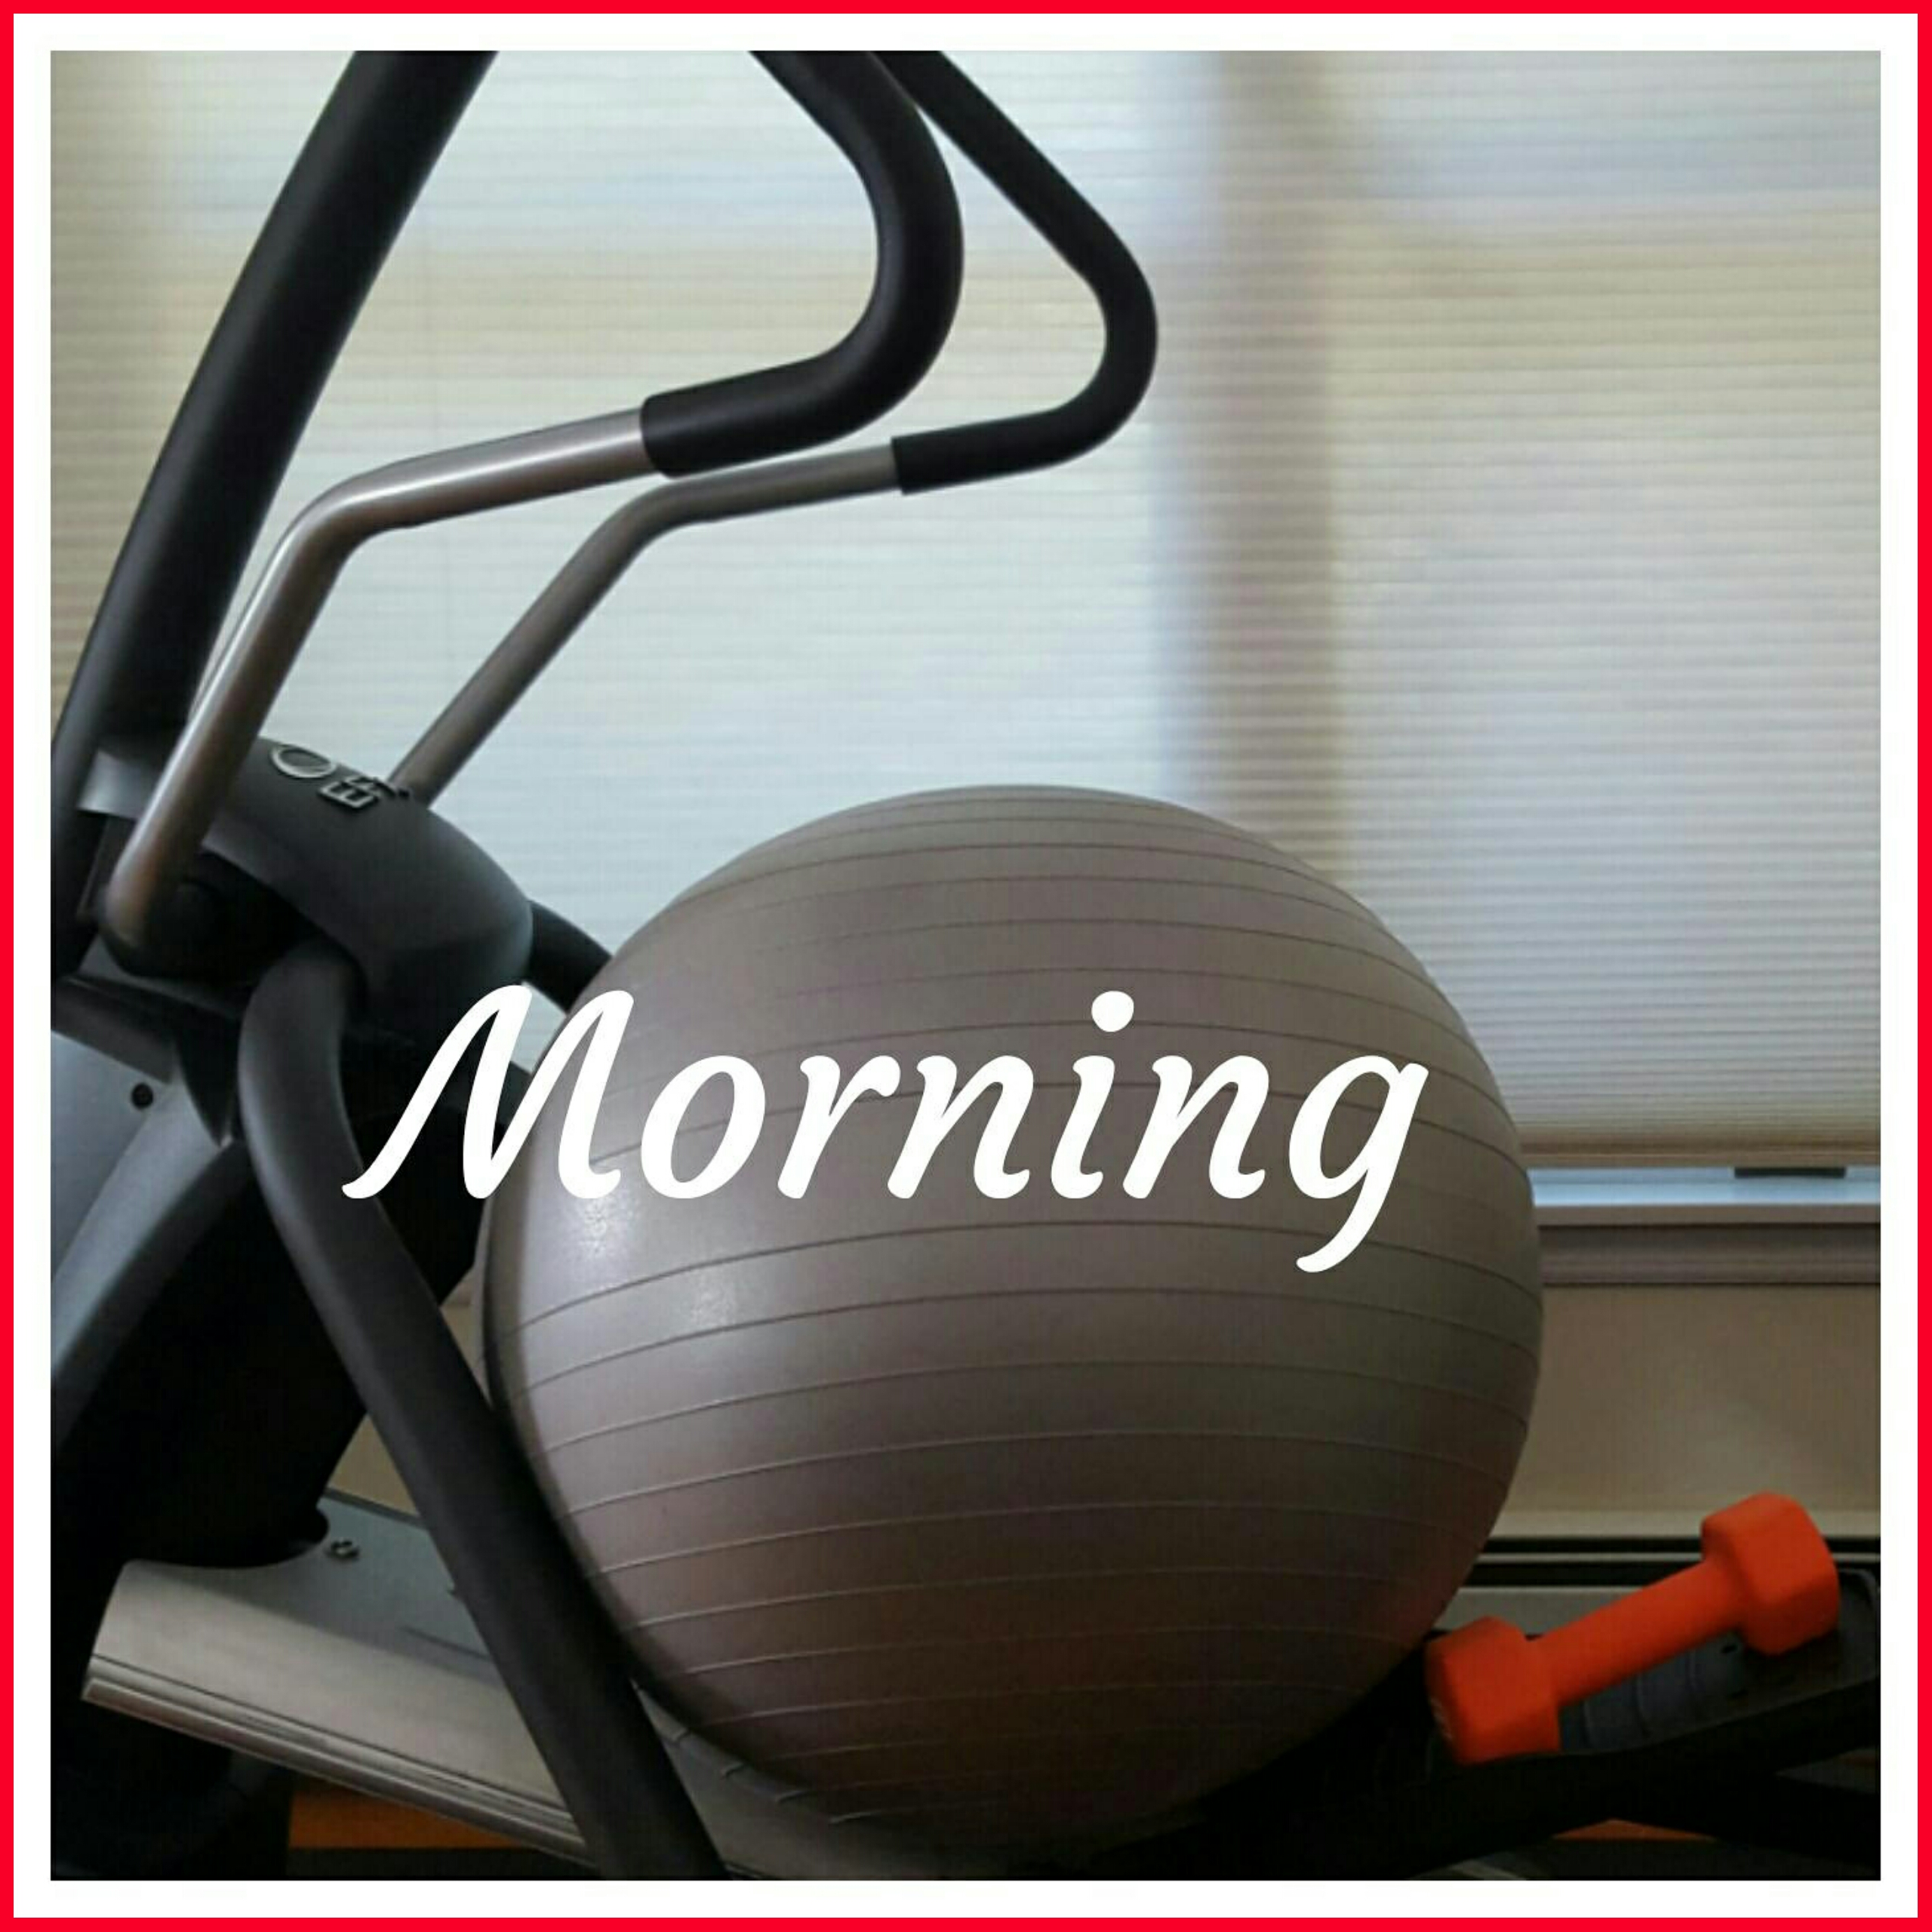 morning on the elliptical trainer